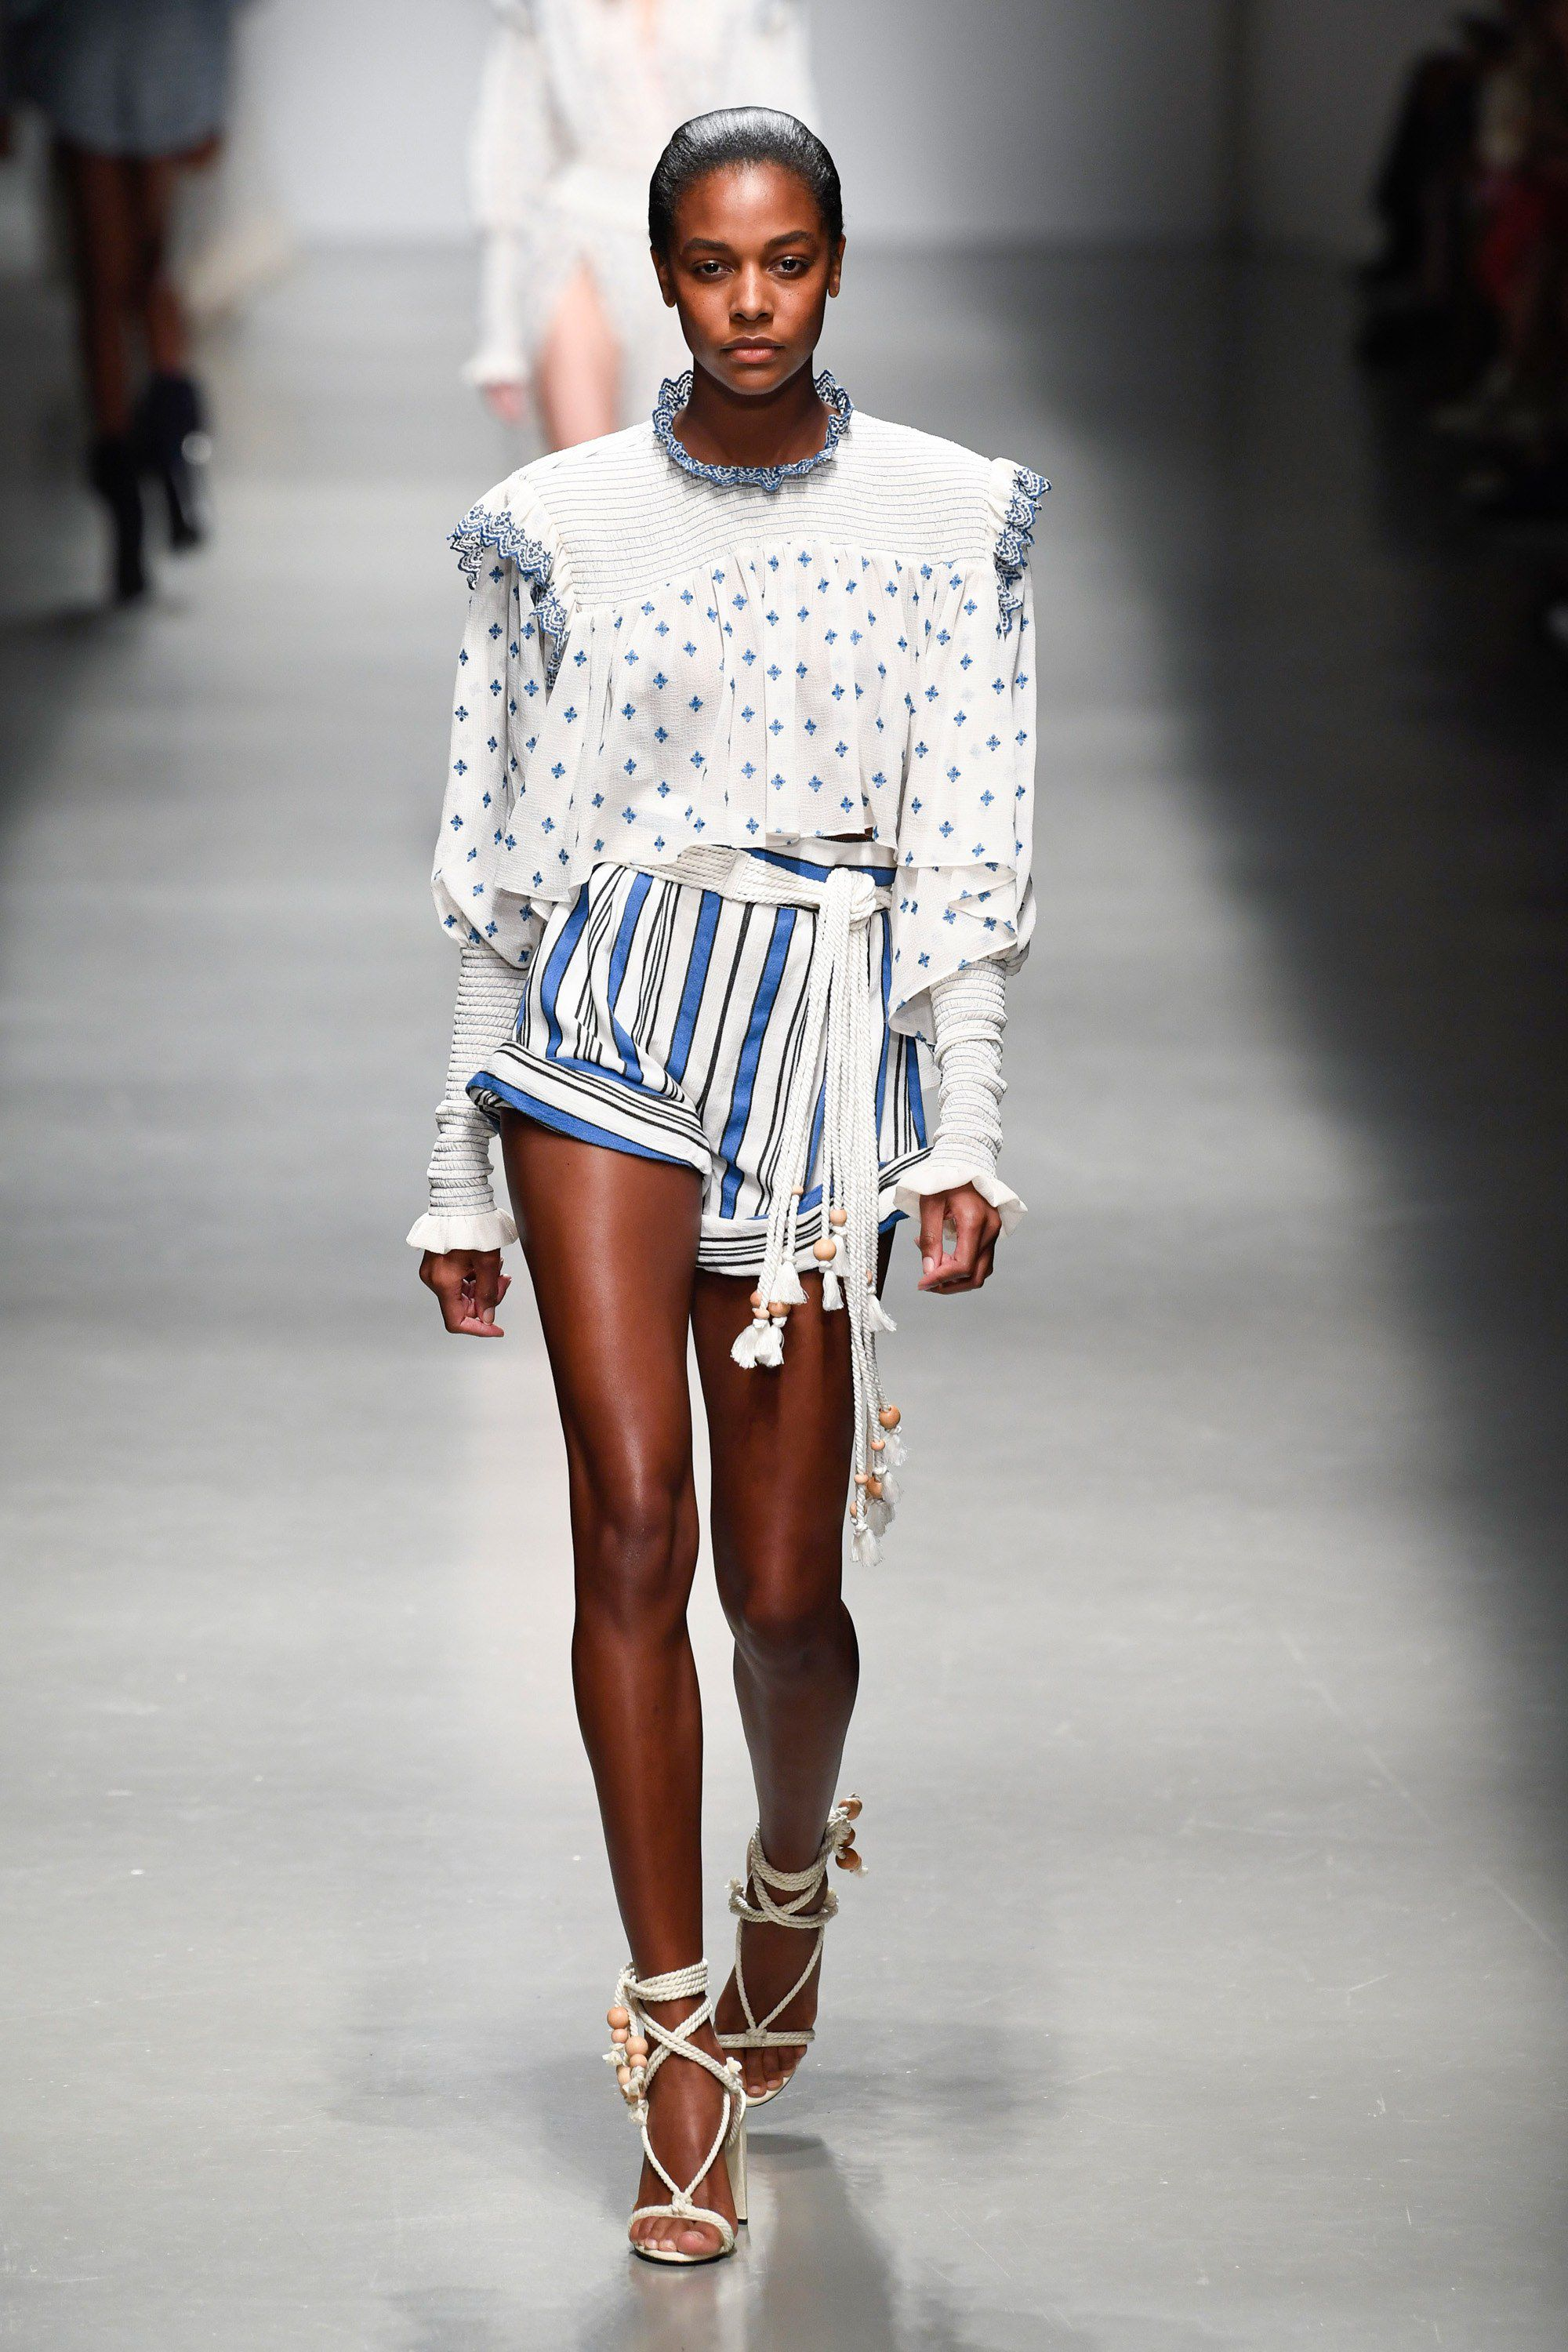 Discussion on this topic: Philosophy di Lorenzo Serafini SpringSummer 2019 Collection , philosophy-di-lorenzo-serafini-springsummer-2019-collection/